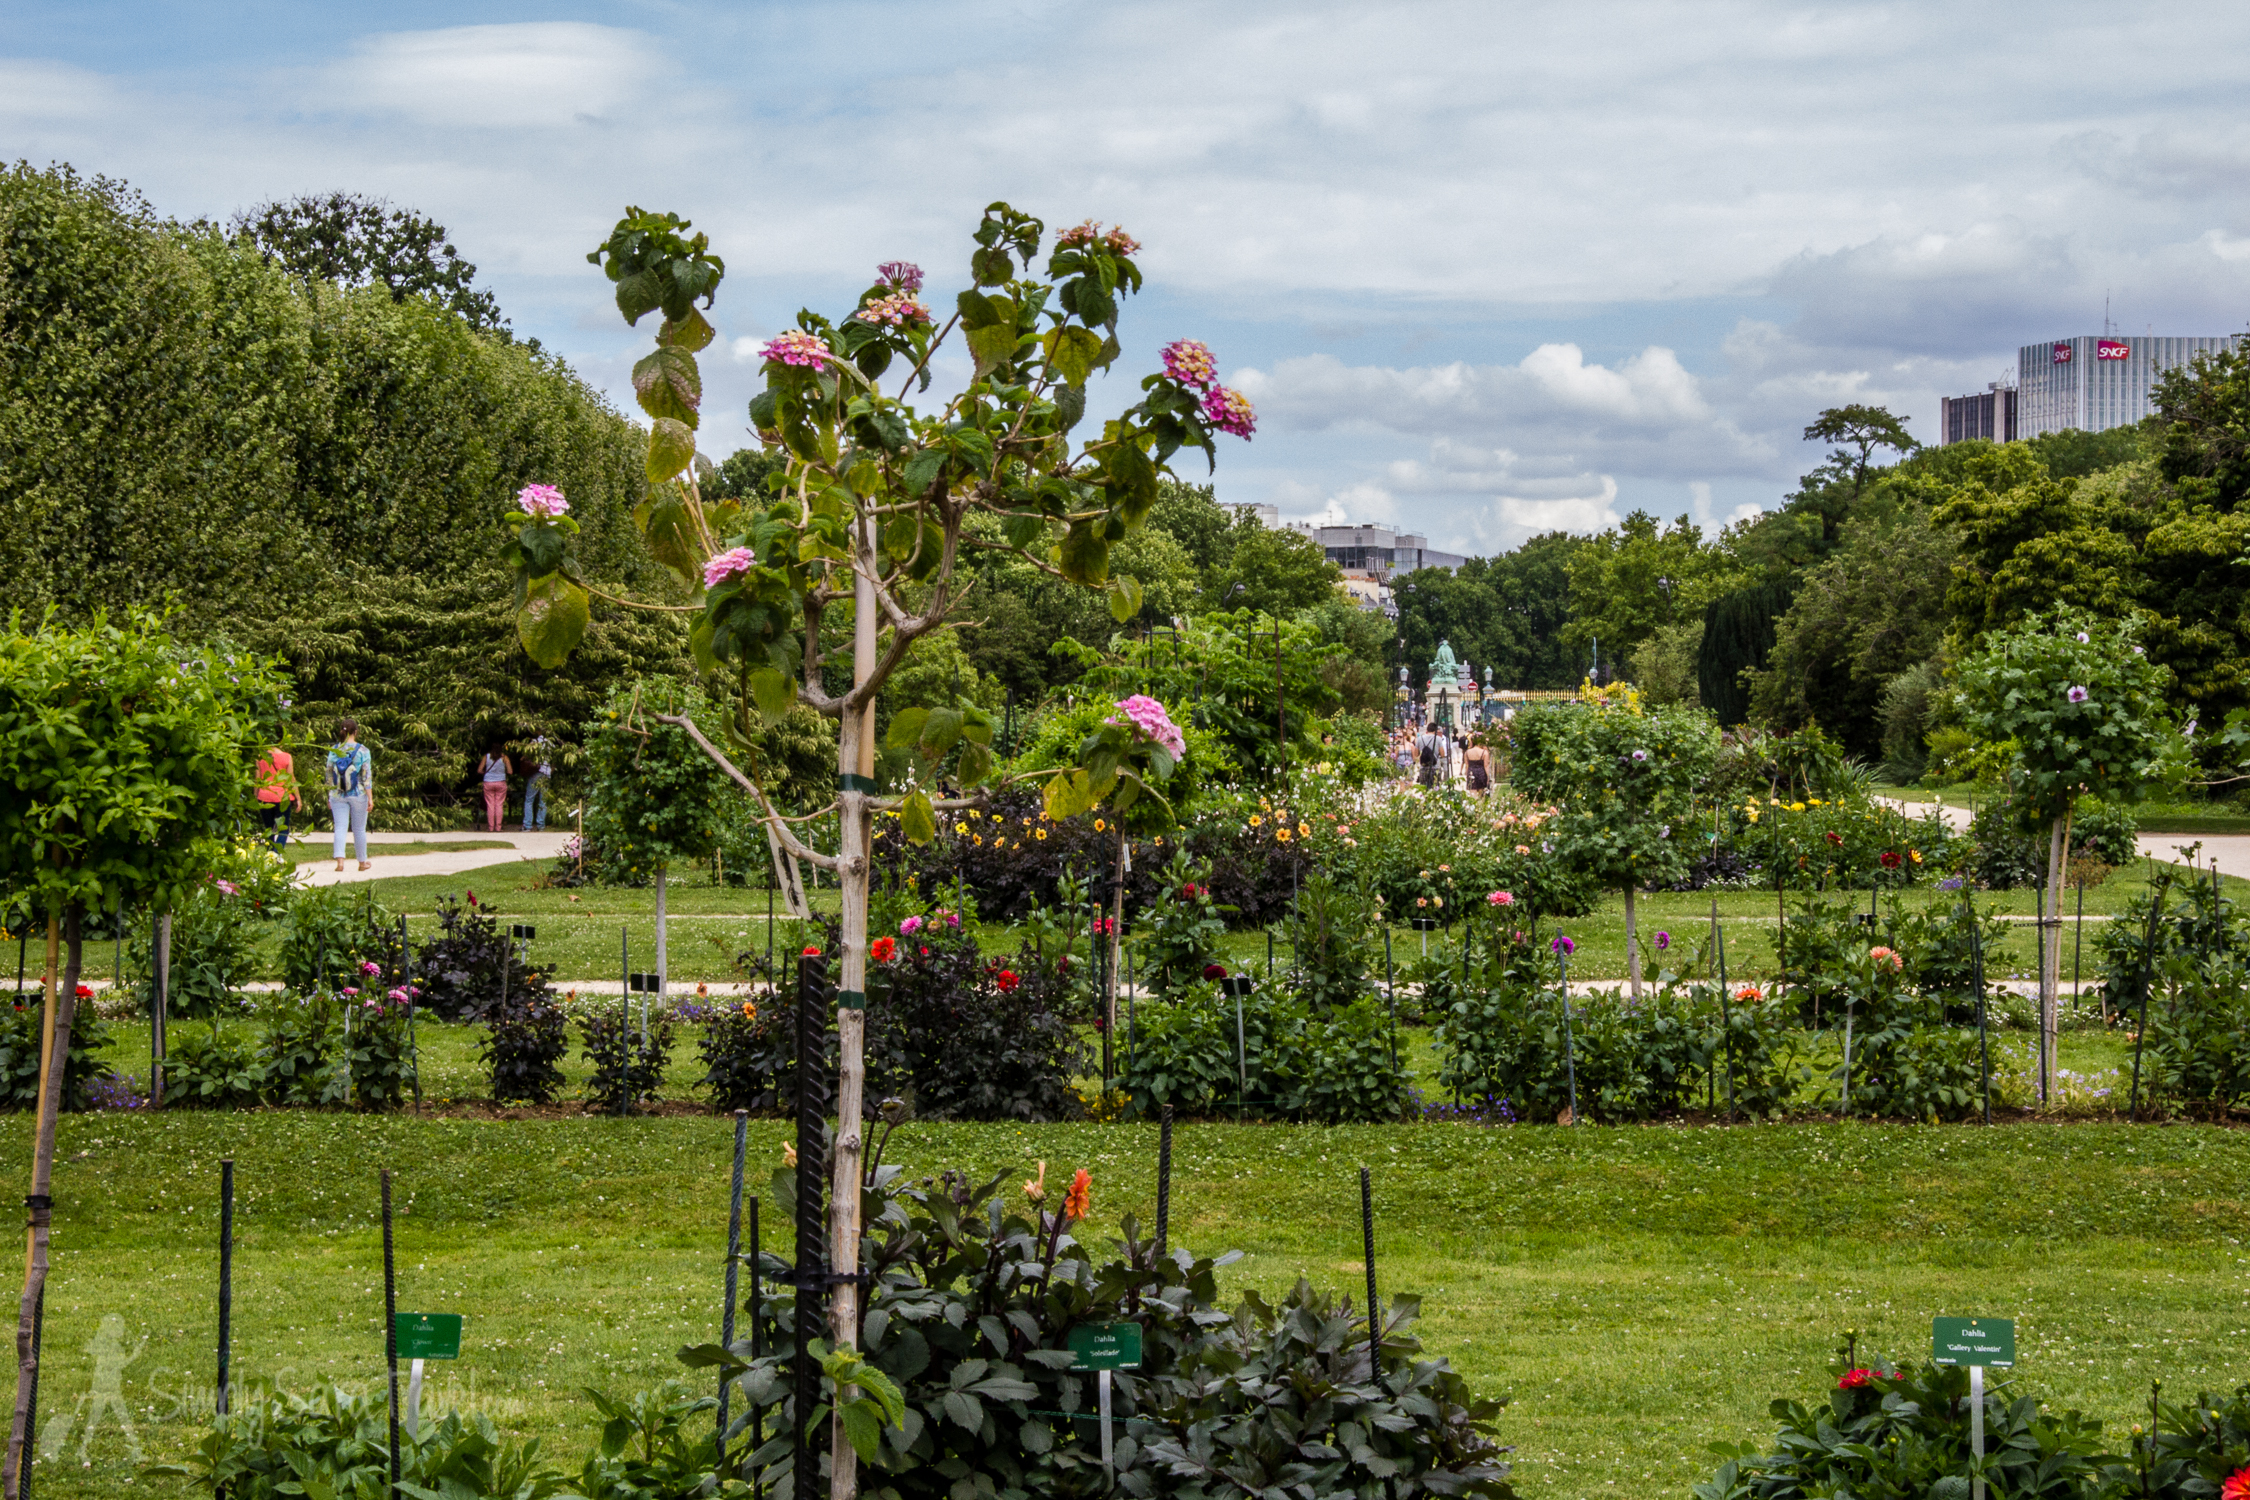 A view of the gardens looking north towards the Seine